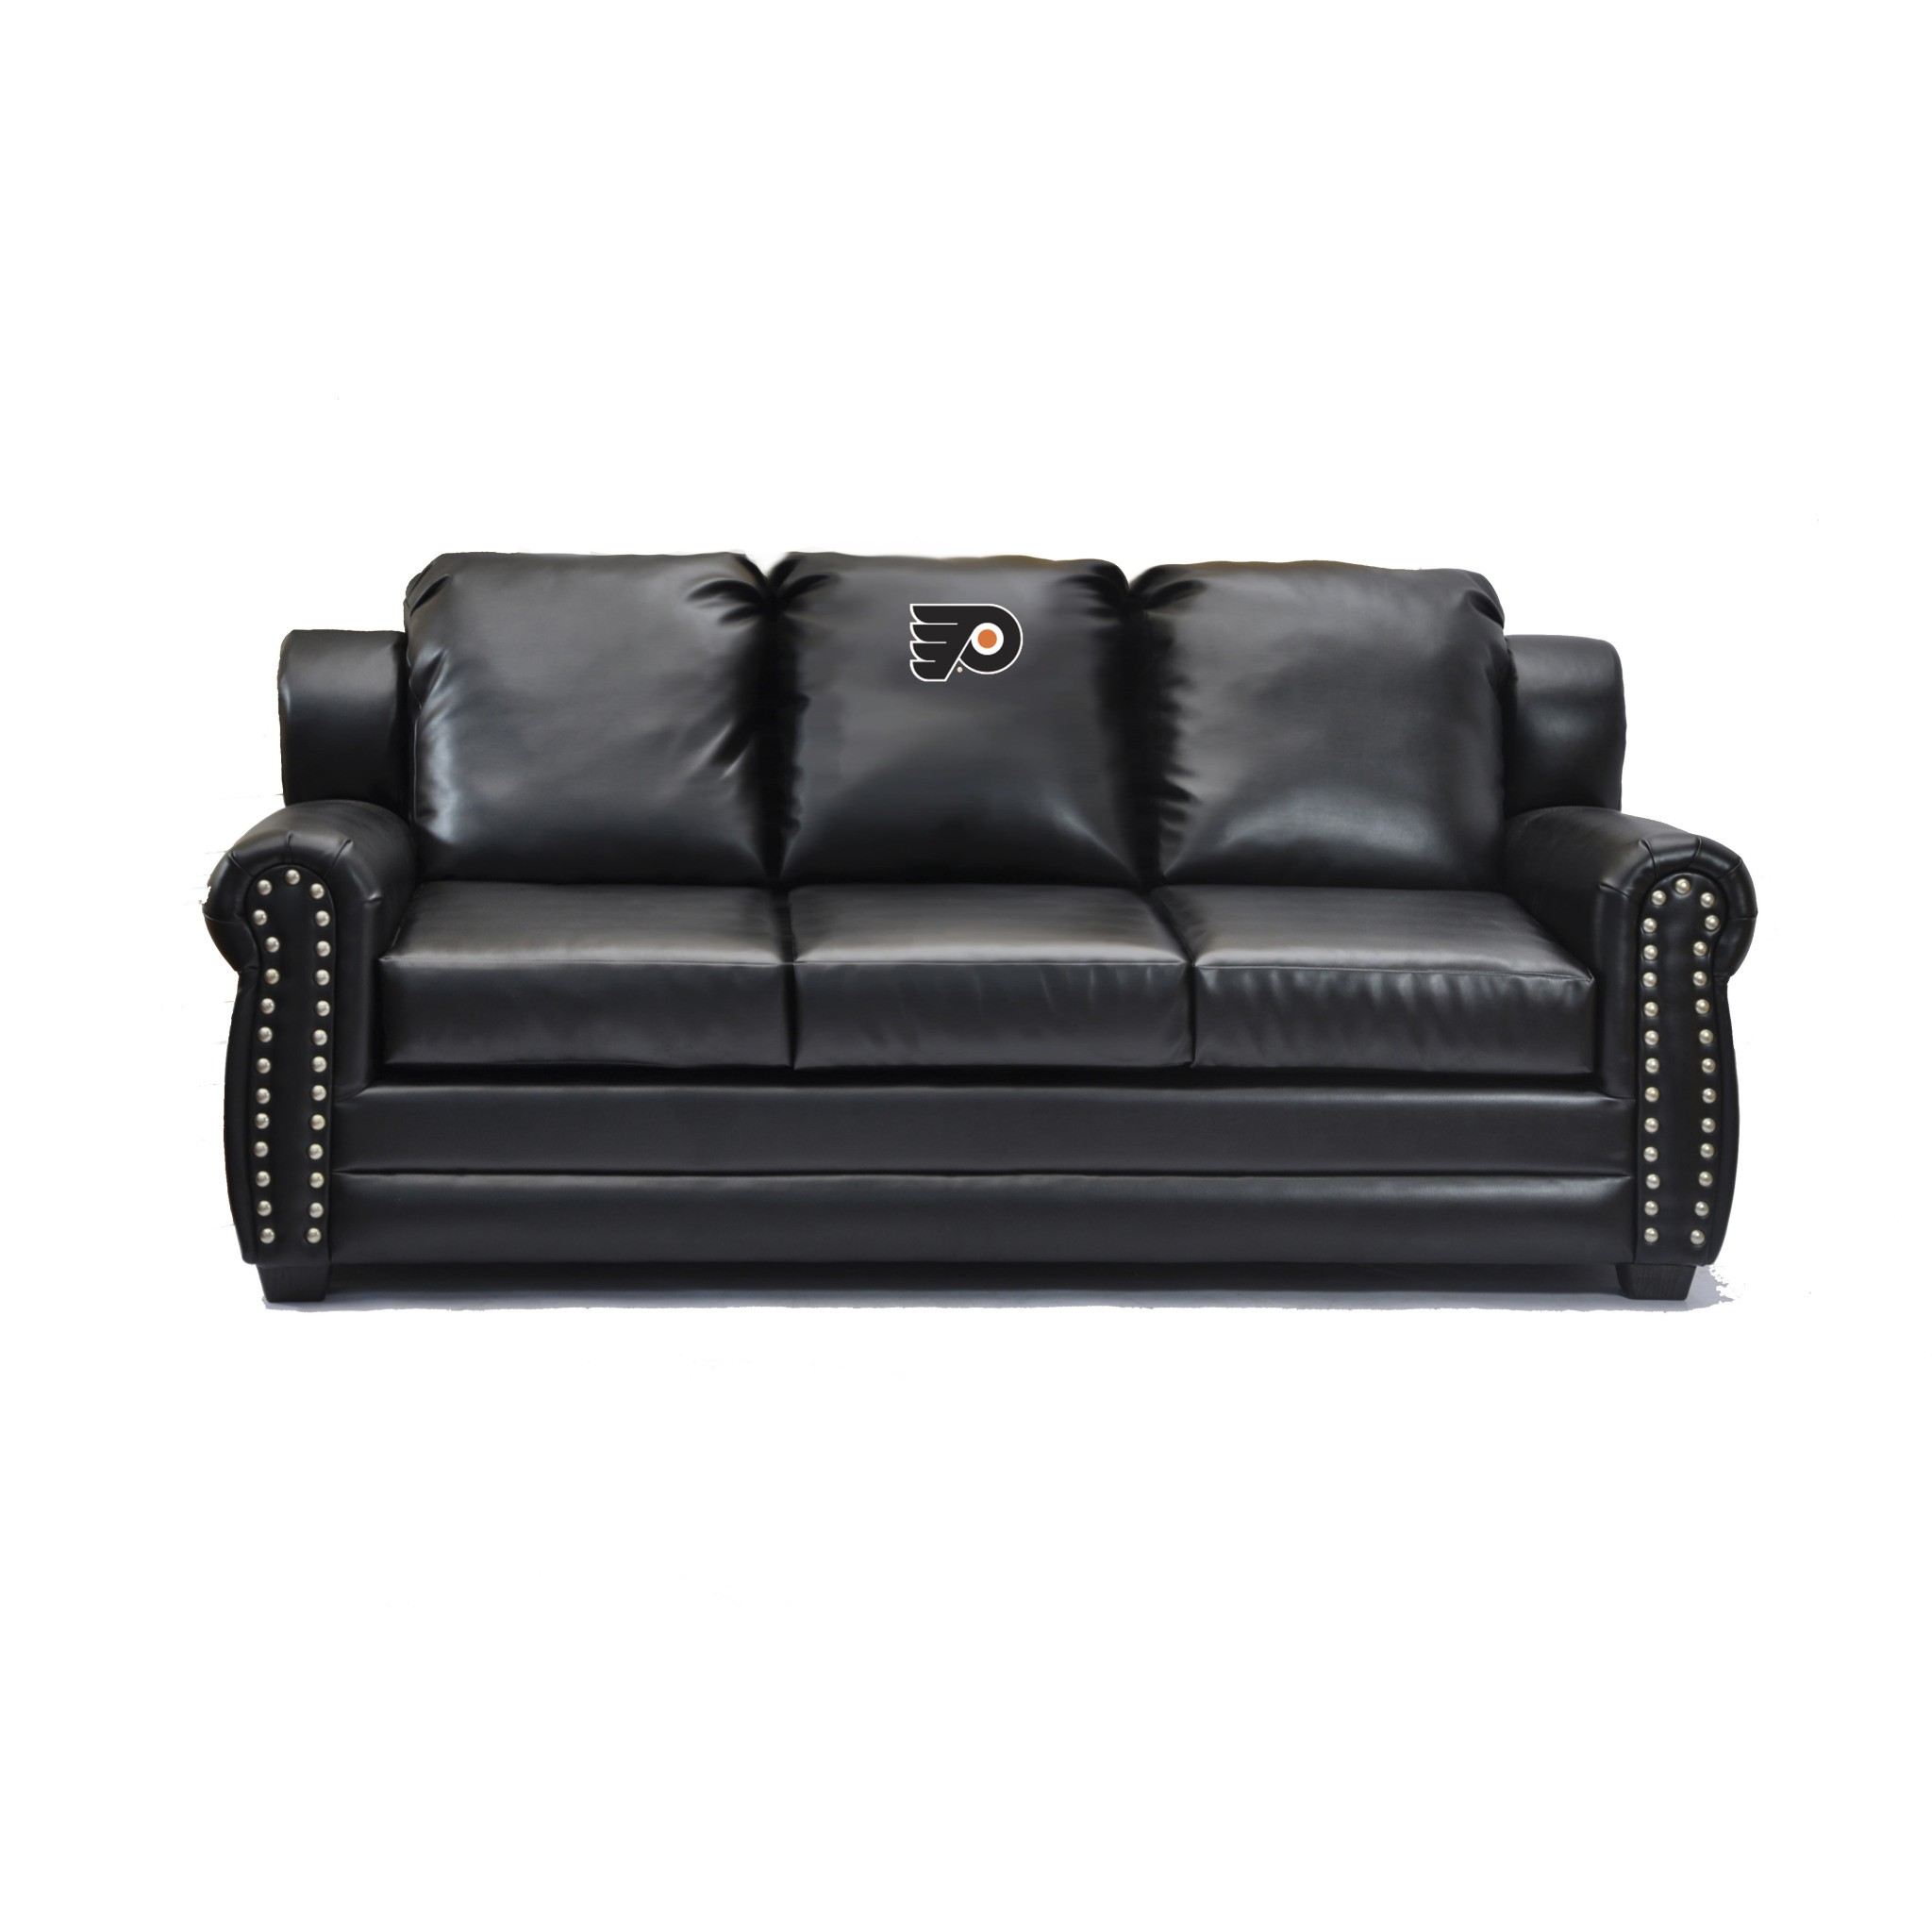 Sofa Philadelphia Design Sofa Philadelphia L Shape Wit Led